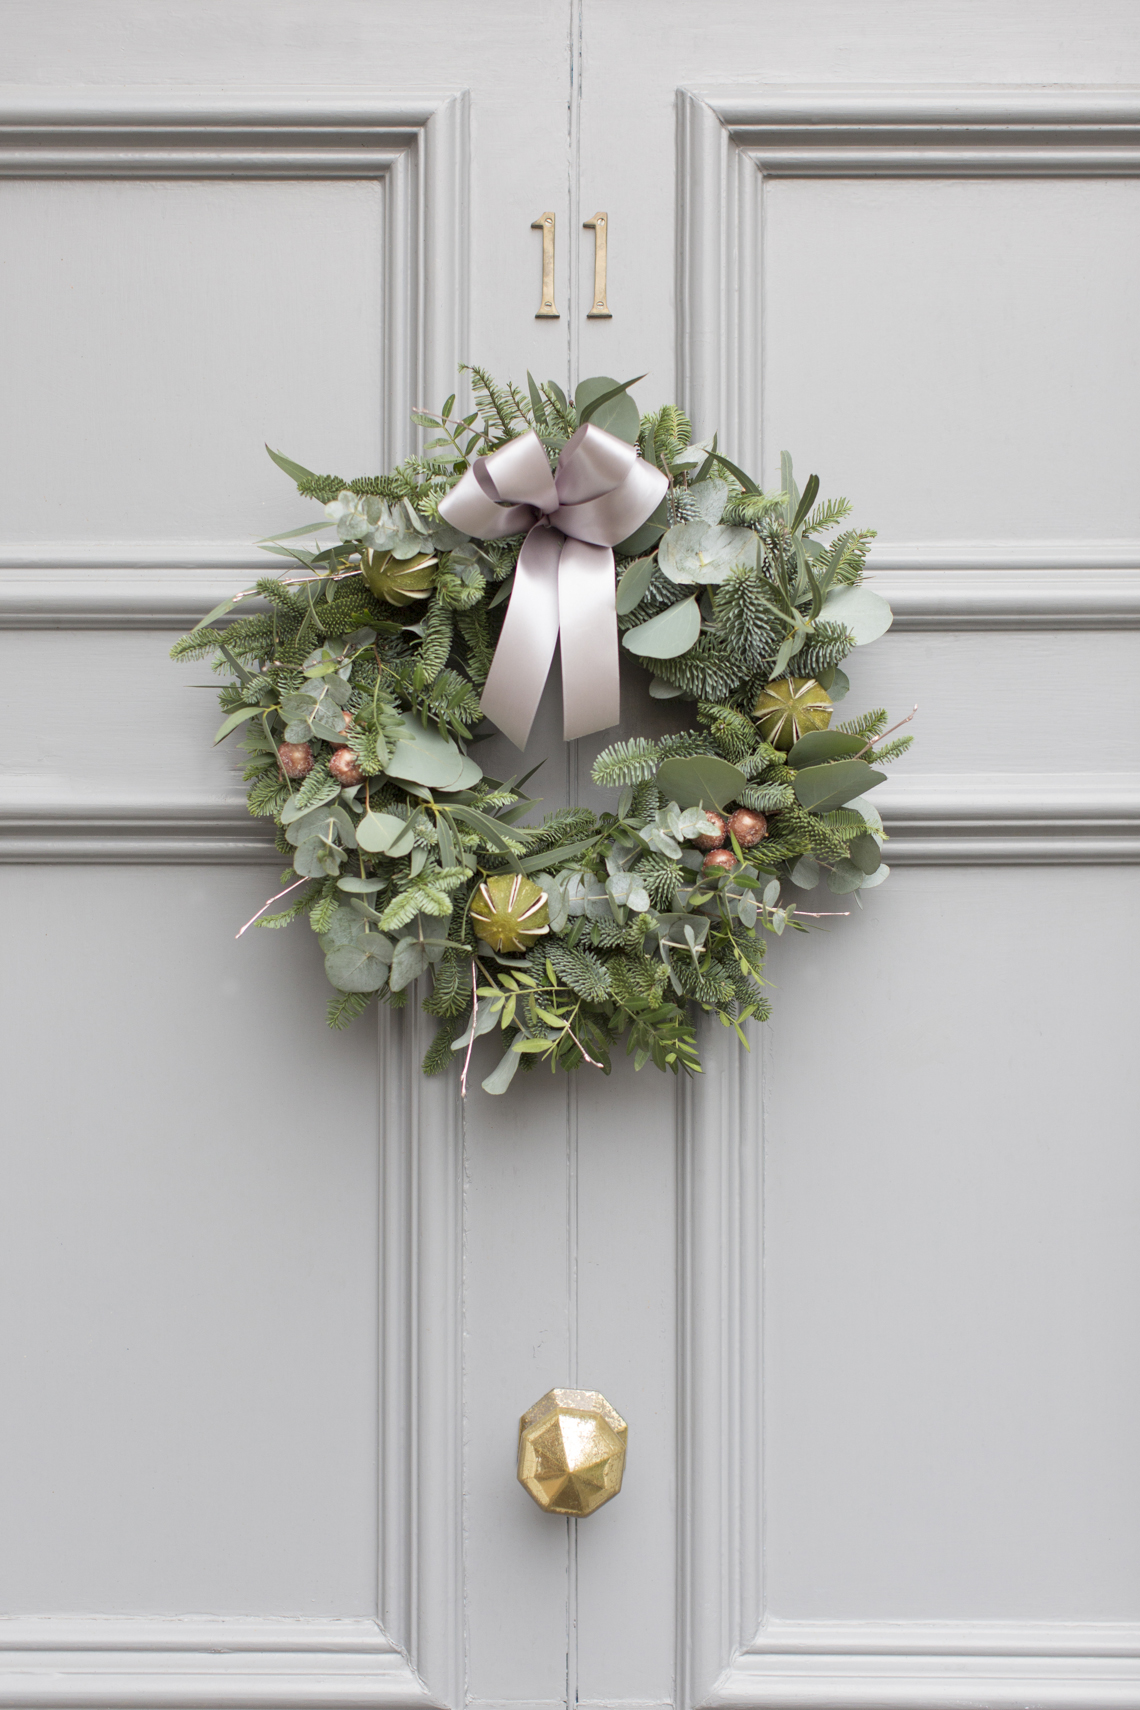 Lovely Christmas Wreath Diy By The Rose Shed Bloved Blog Wiring Lights In A First Secure Start Of Your Reel Wire To Frame Winding It Round Couple Times And Twisting Around One Copper Wires